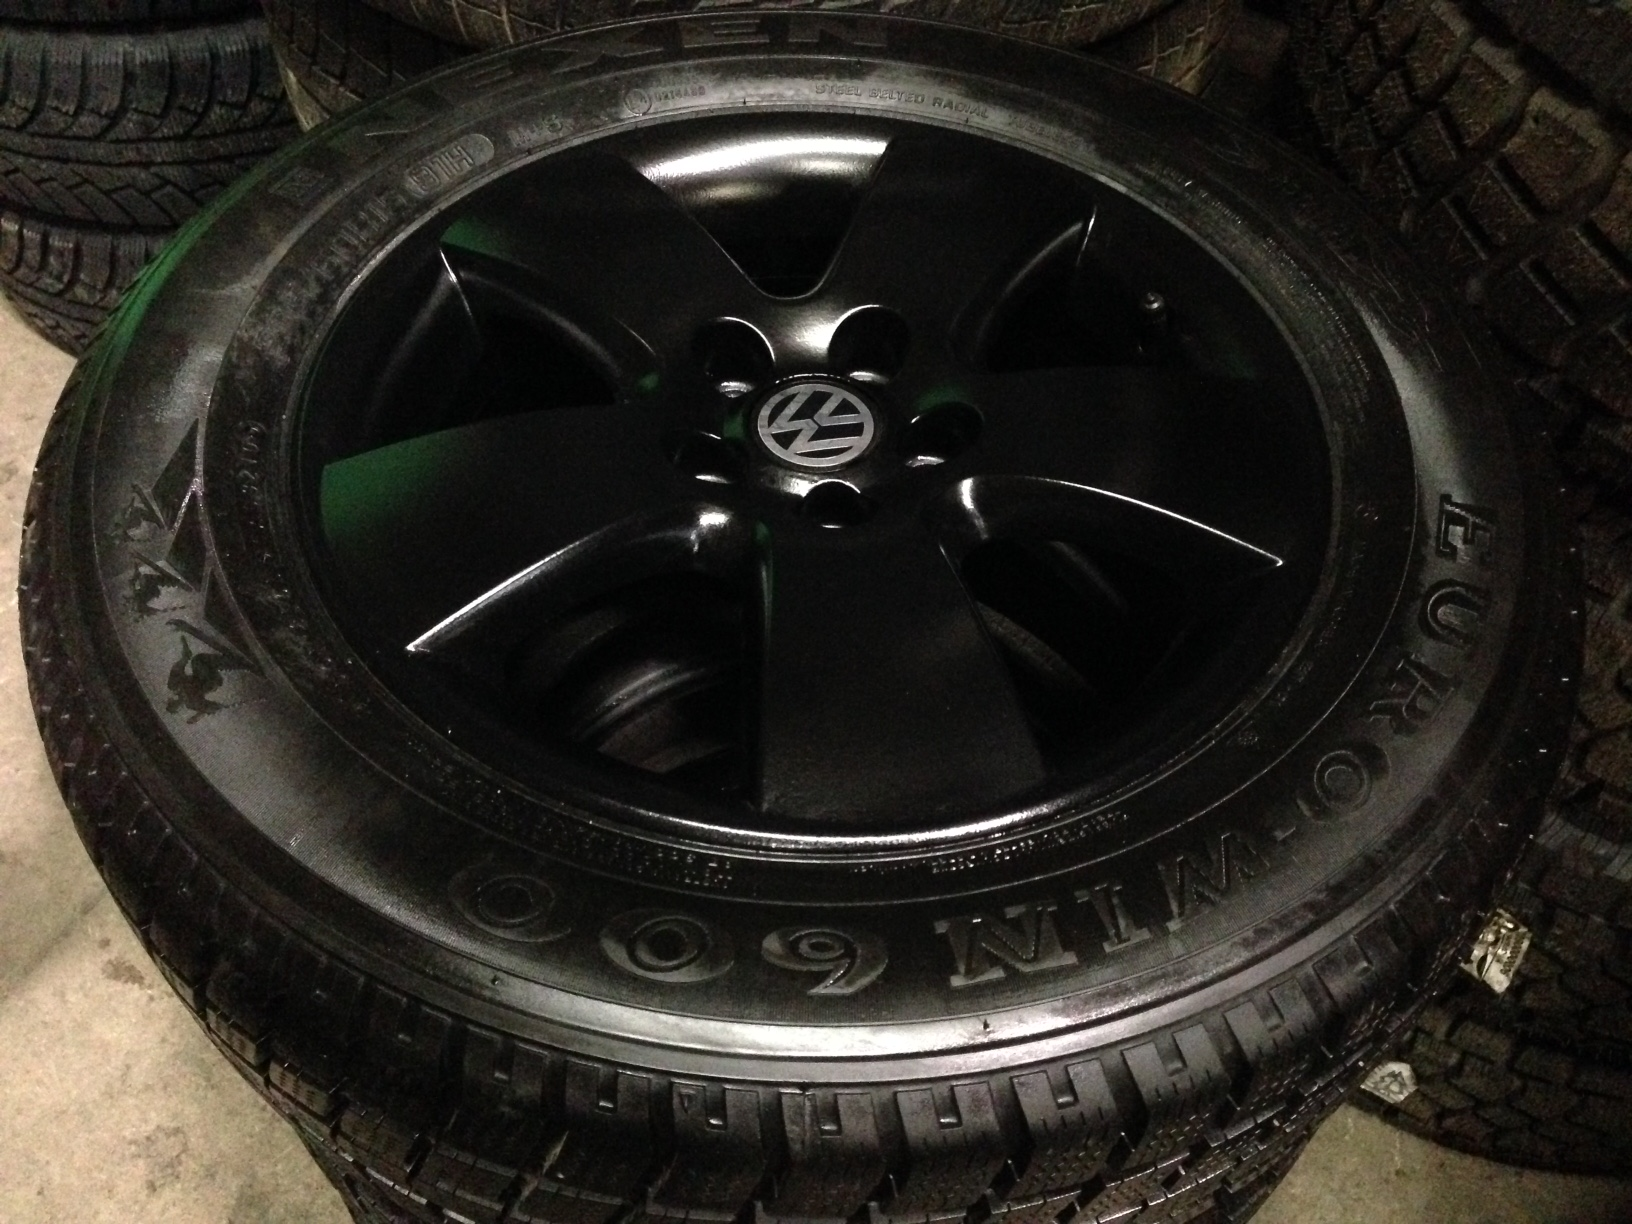 vw Golf Jetta winter rims and tires for sale